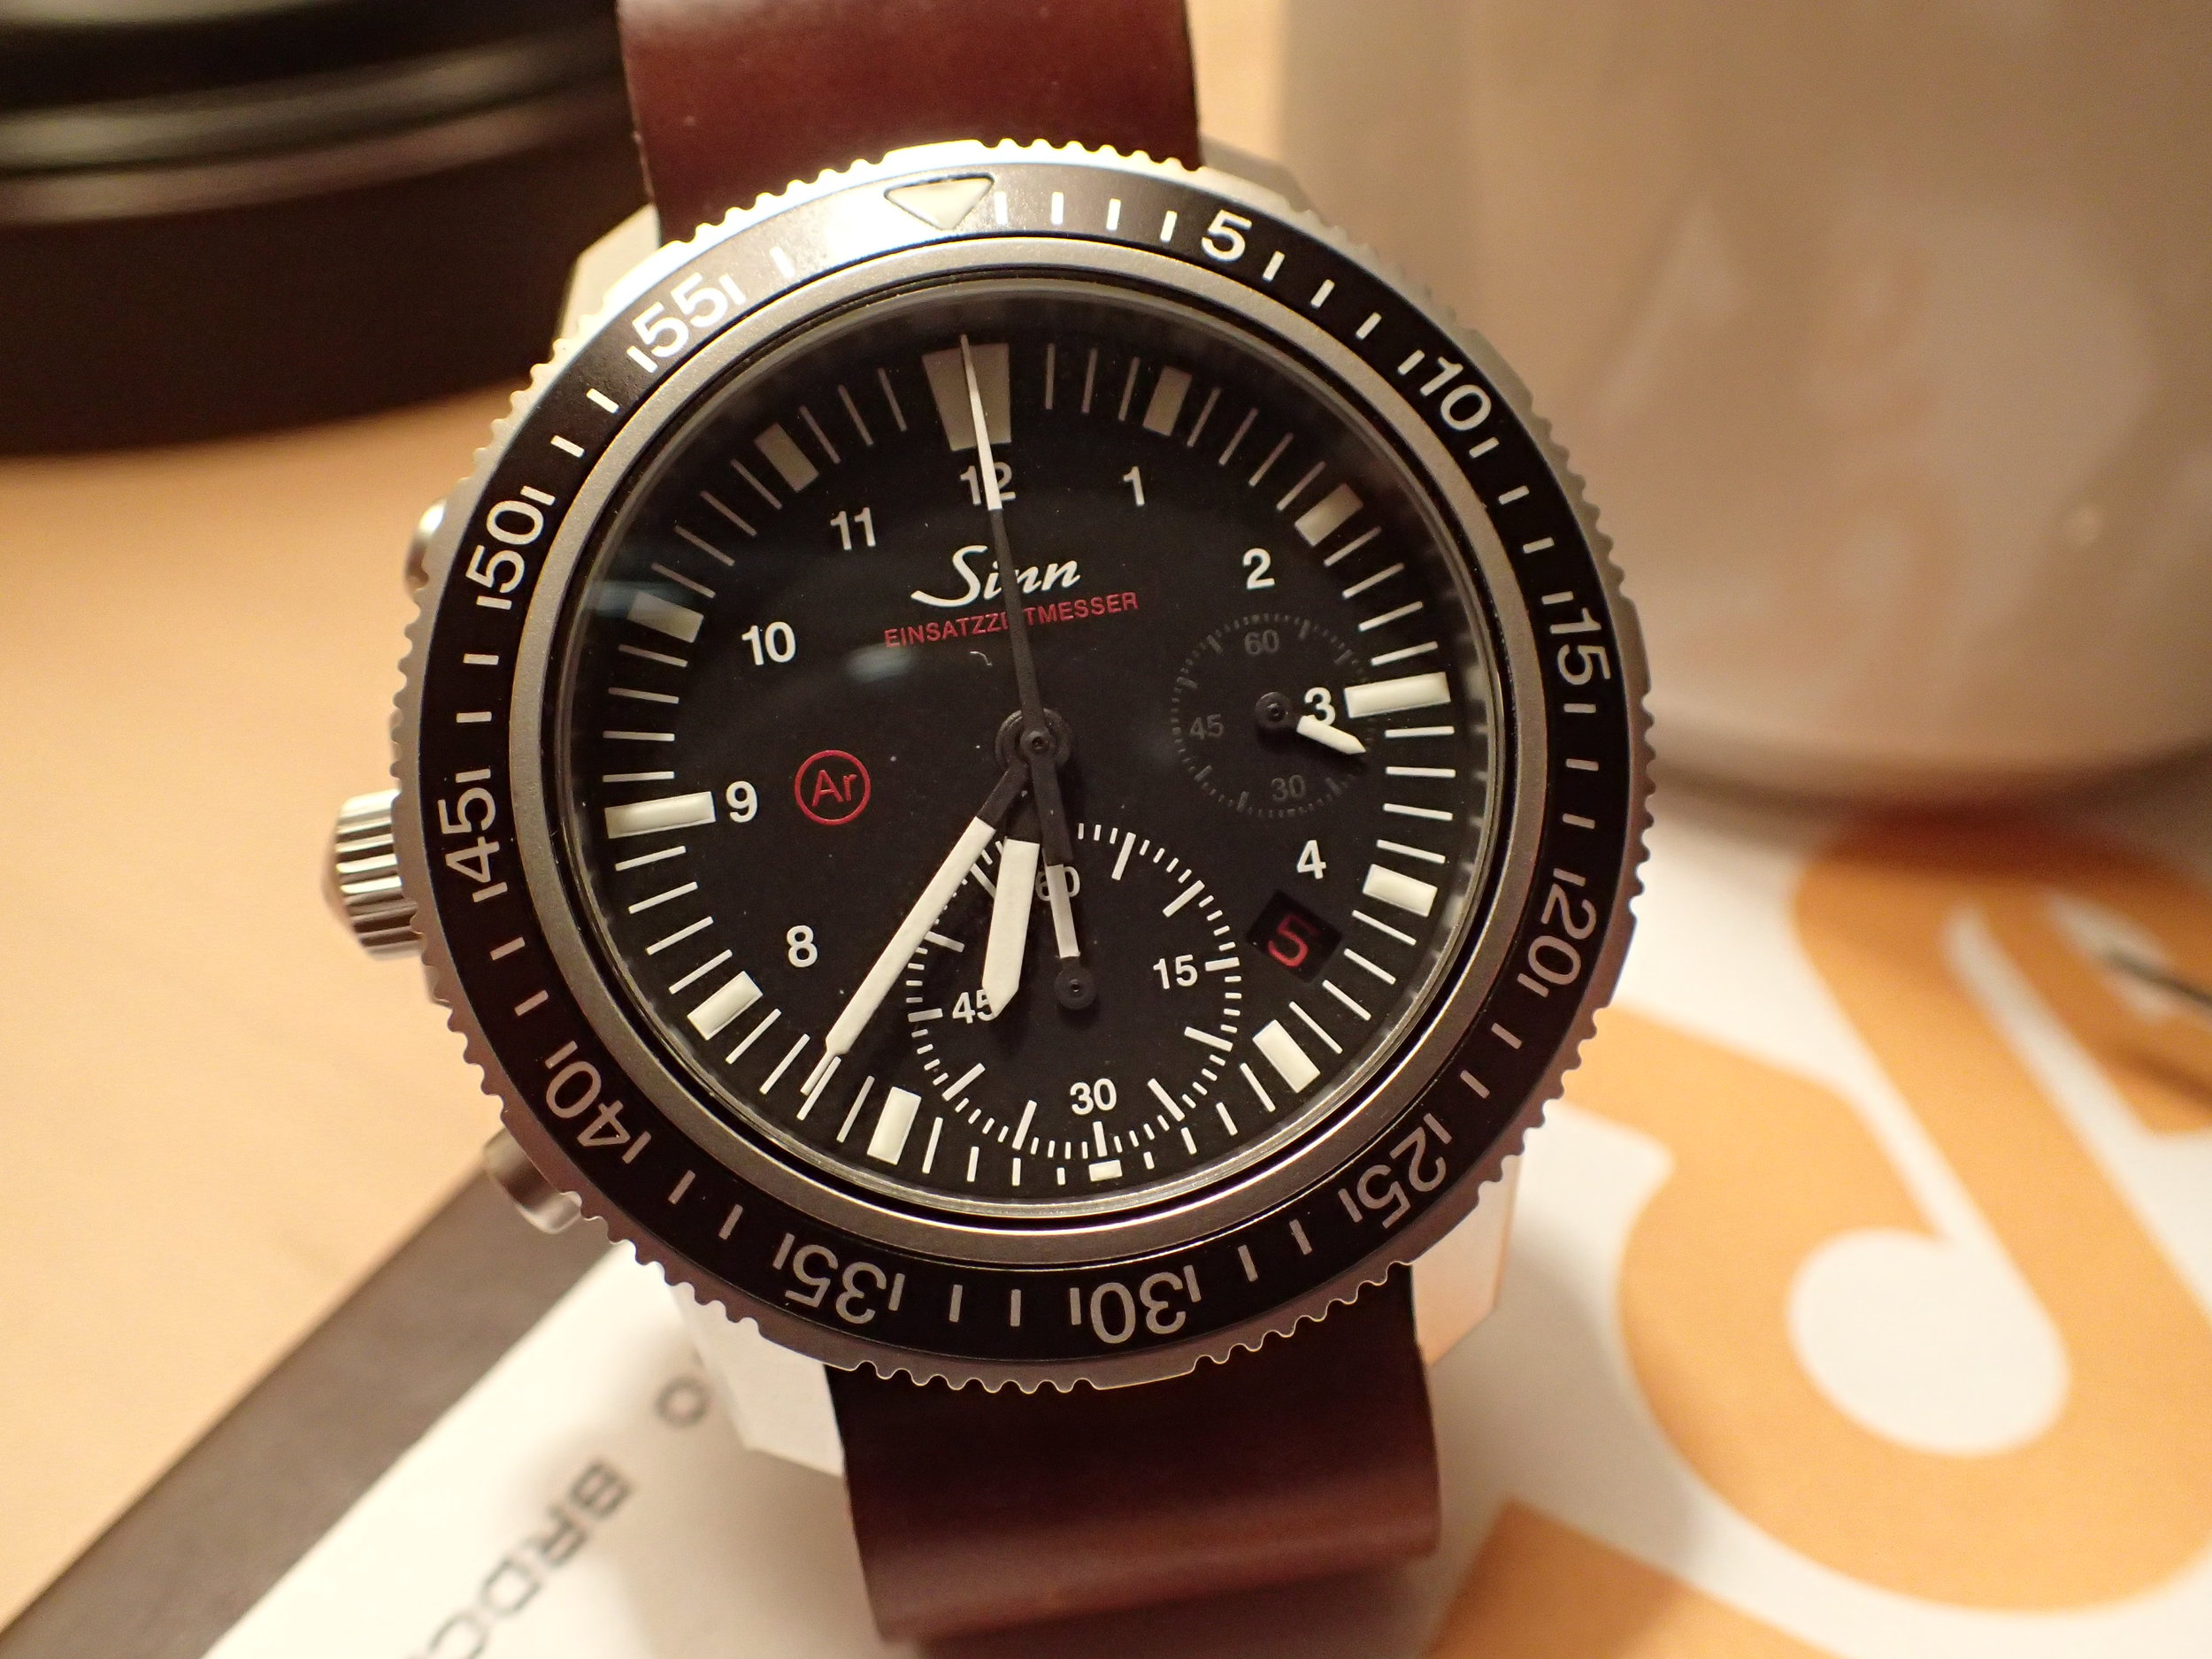 Omit the running seconds hand at 3:00 and lume the chronograph minutes dial and this watch would be perfect.